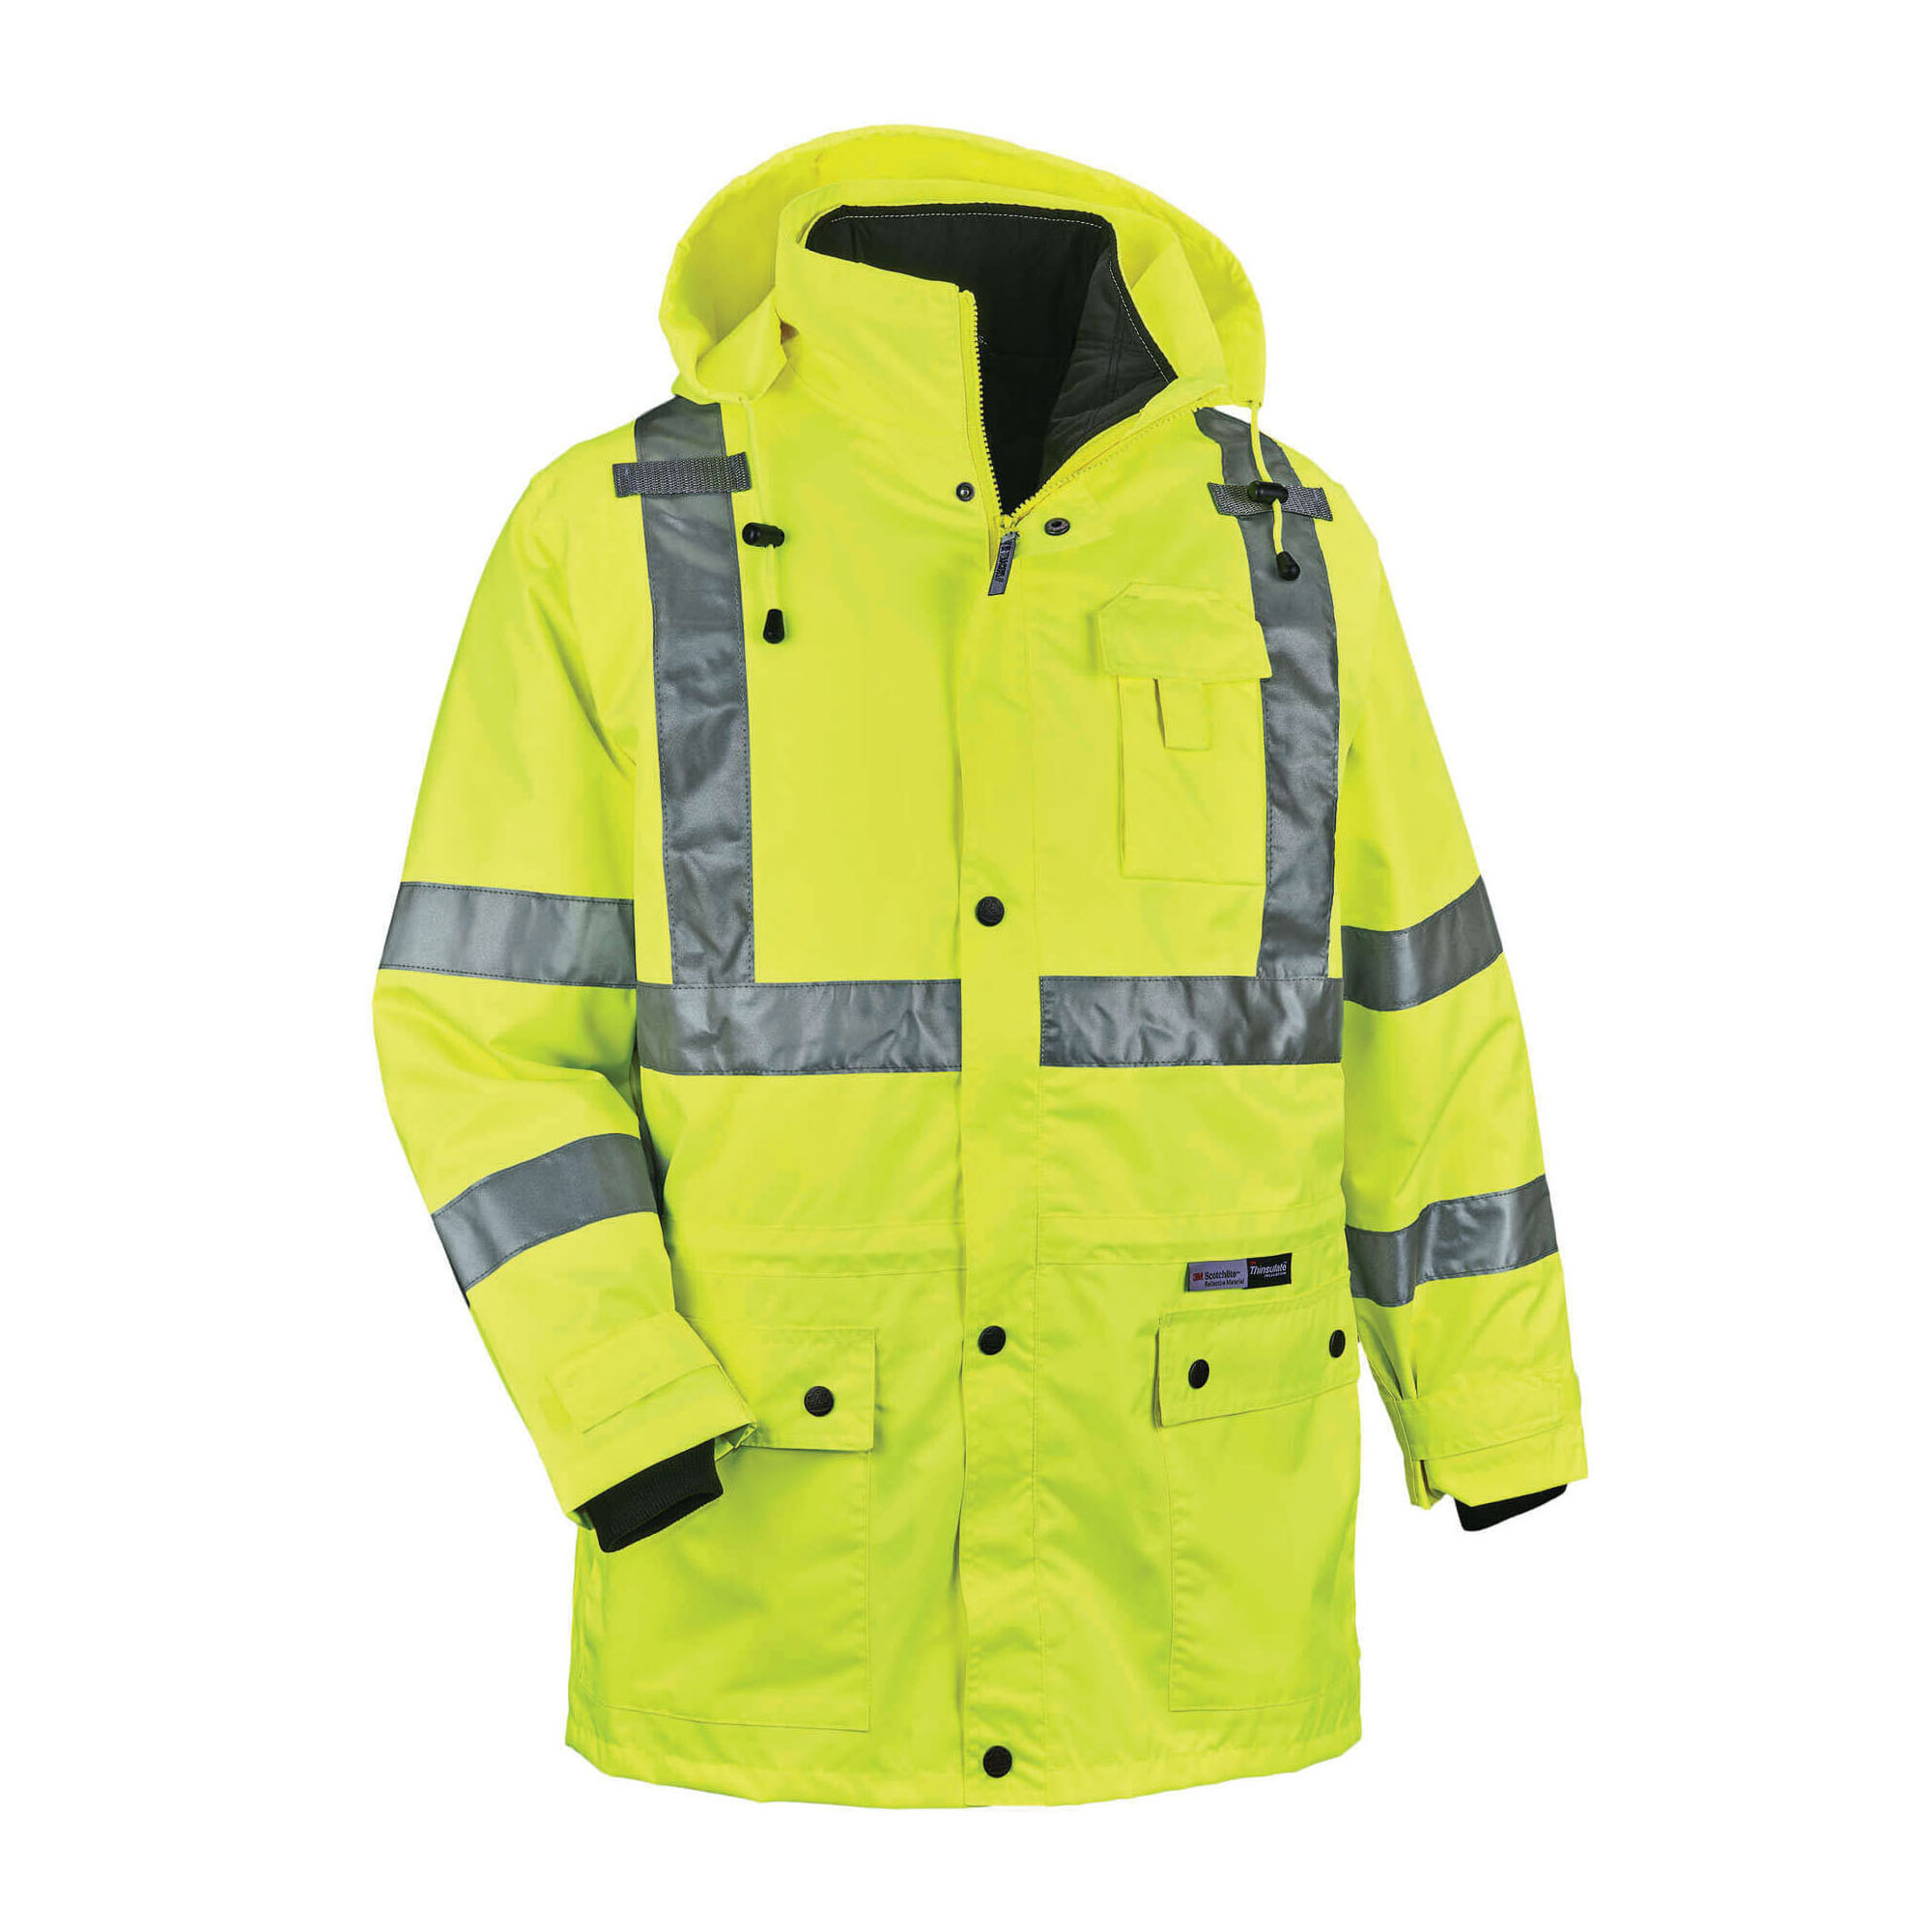 GloWear® 24382 8385 4-in-1 Hooded Insulated Jacket, Black/Hi-Viz Lime, 300D Polyester Oxford/Thinsulate®, 34 to 36 in Chest, Resists: Weather, Specifications Met: ANSI/ISEA 107-2010, Class 3 Type R